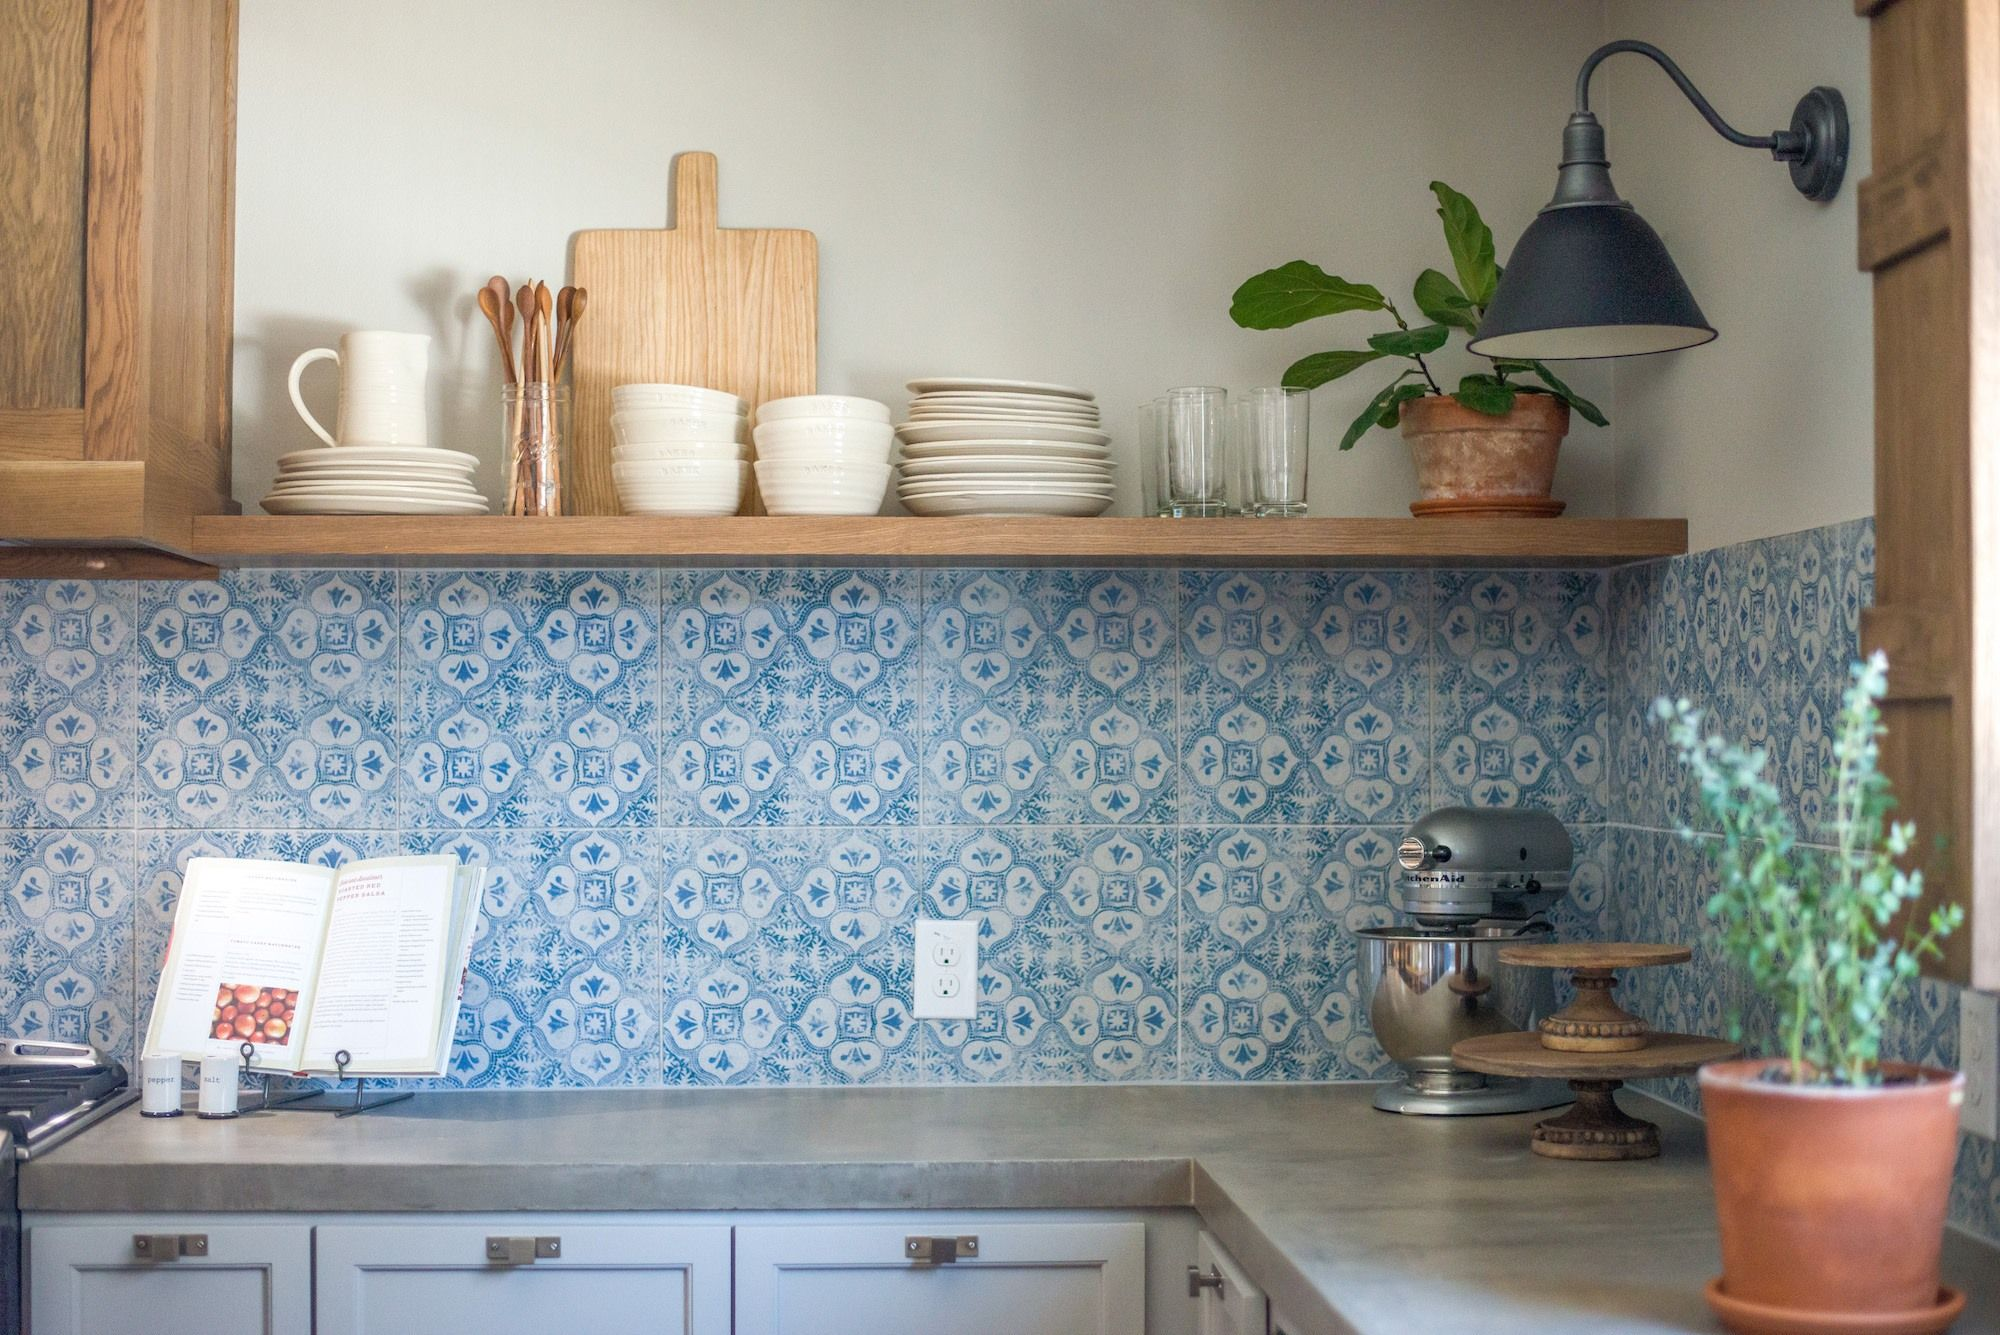 Design Tips from the Baker house   Magnolia, Kitchens and House